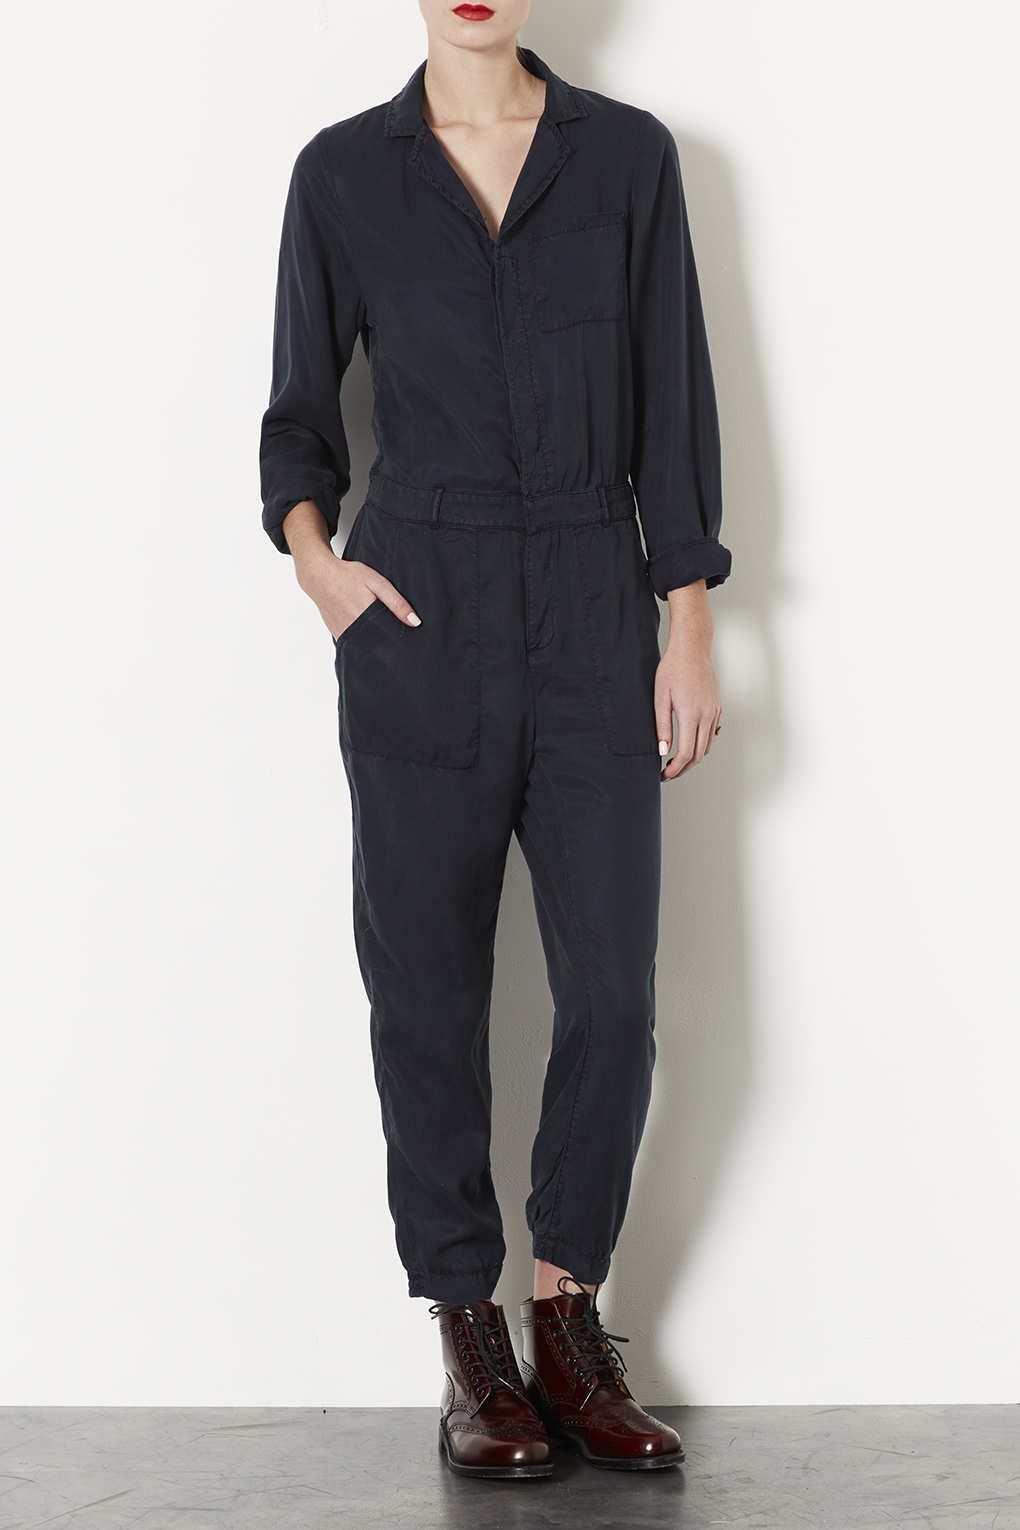 f50d1e5482e Casual Boiler Suit - Playsuits and Jumpsuits - Clothing - Topshop Europe